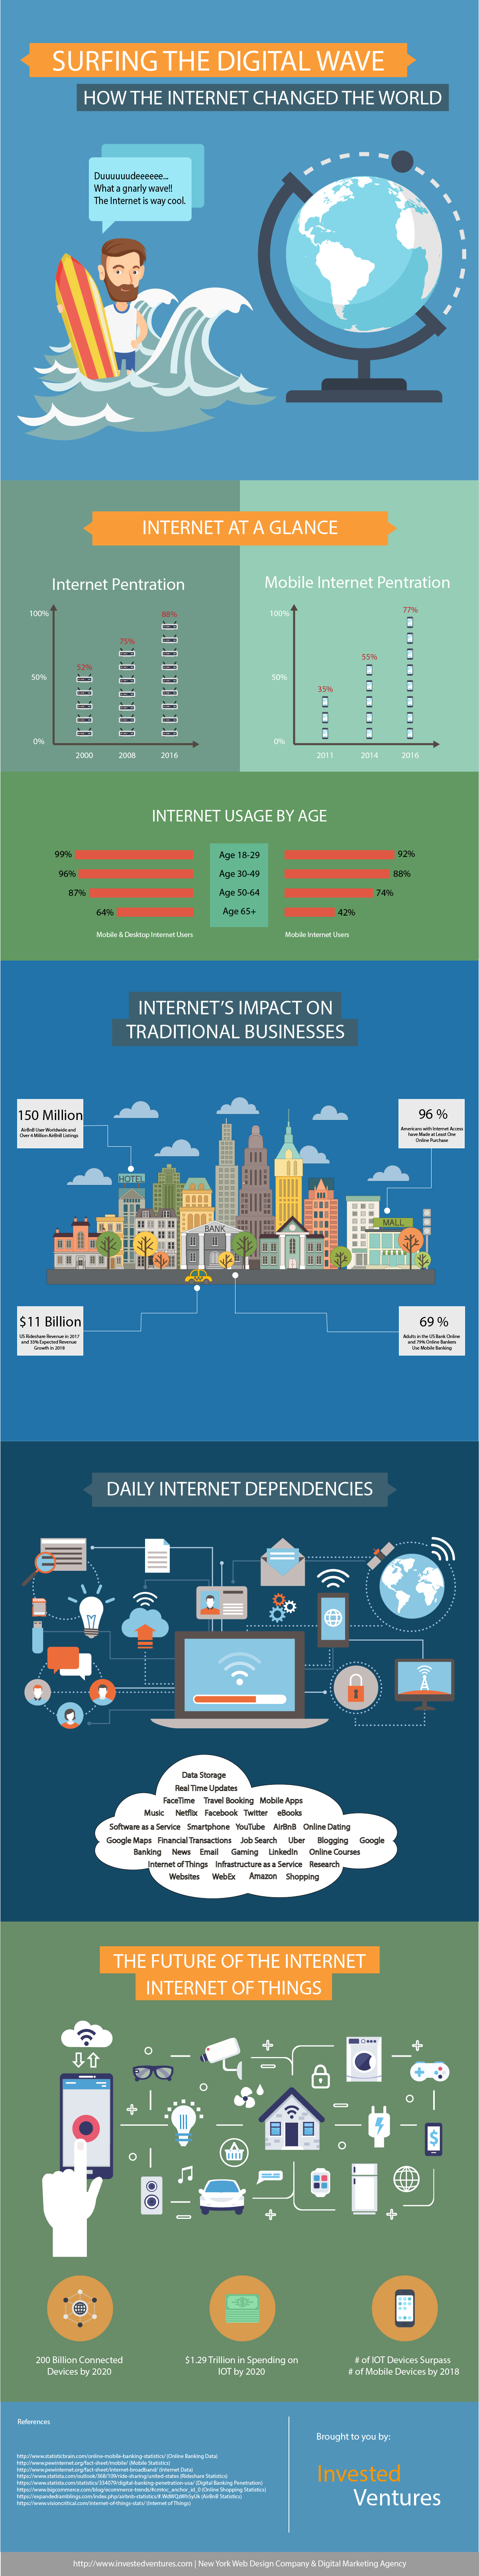 How The Internet Changed The World - Past Present And Future - Infographic